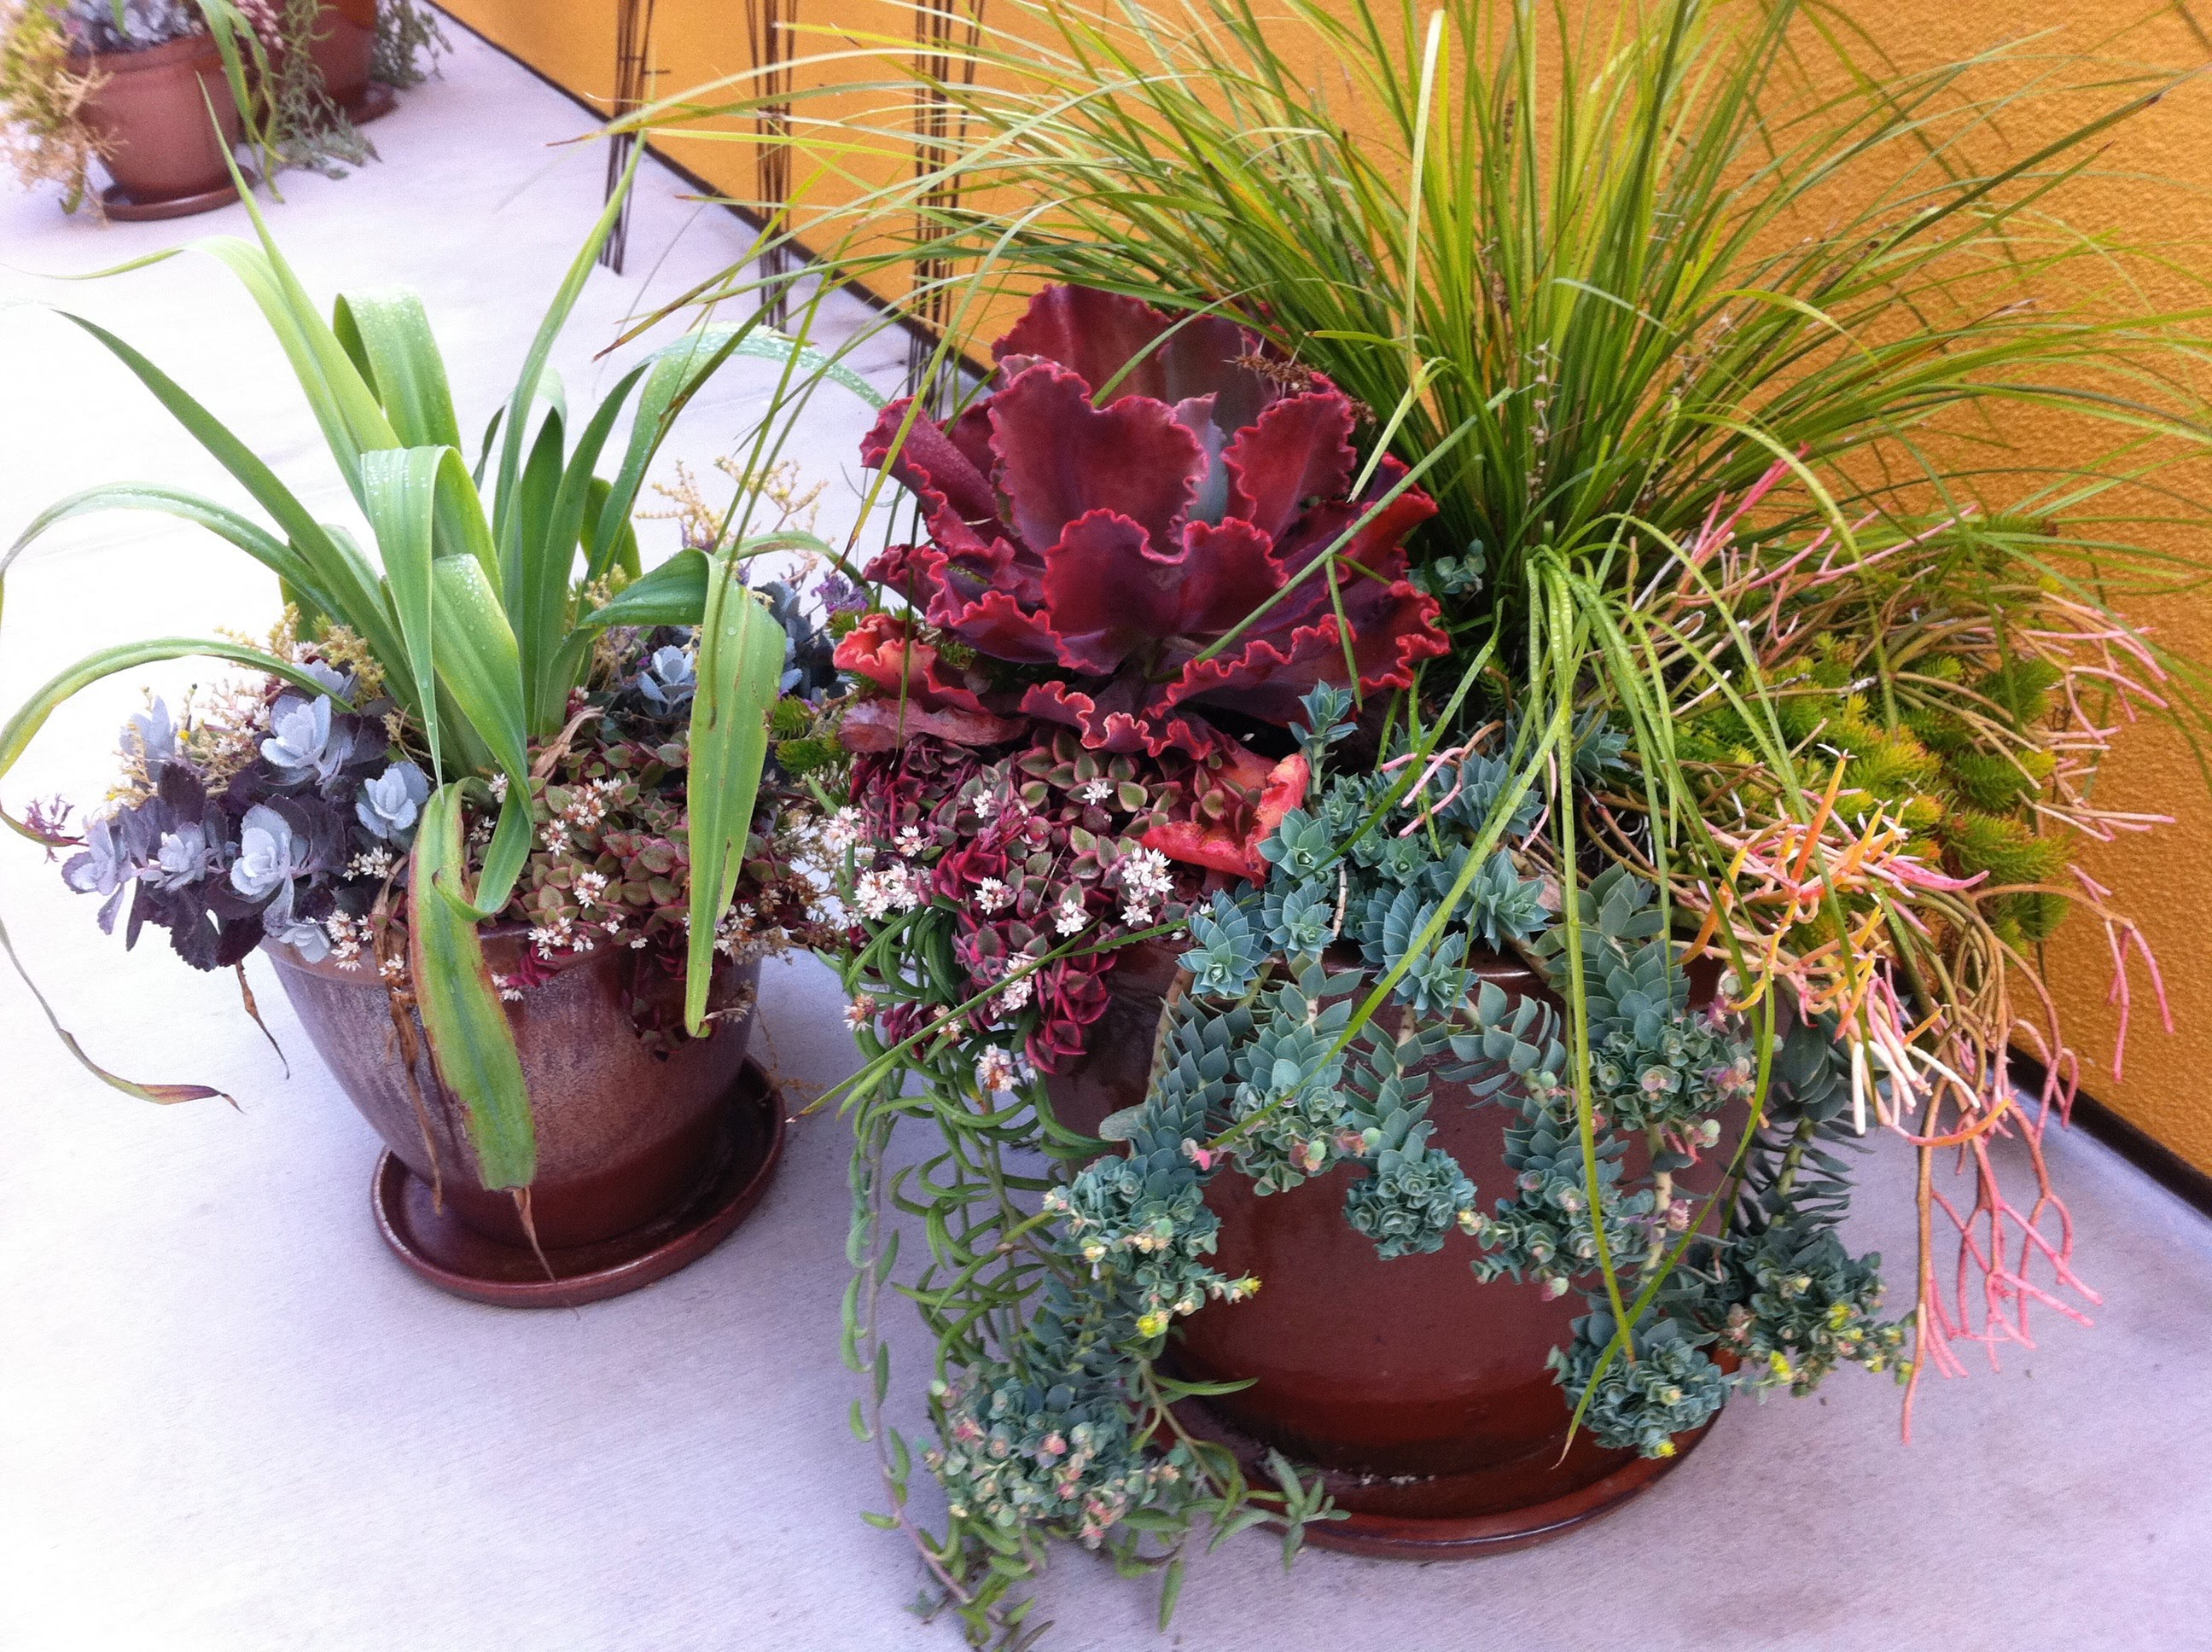 How to Use Pots in Landscape Design